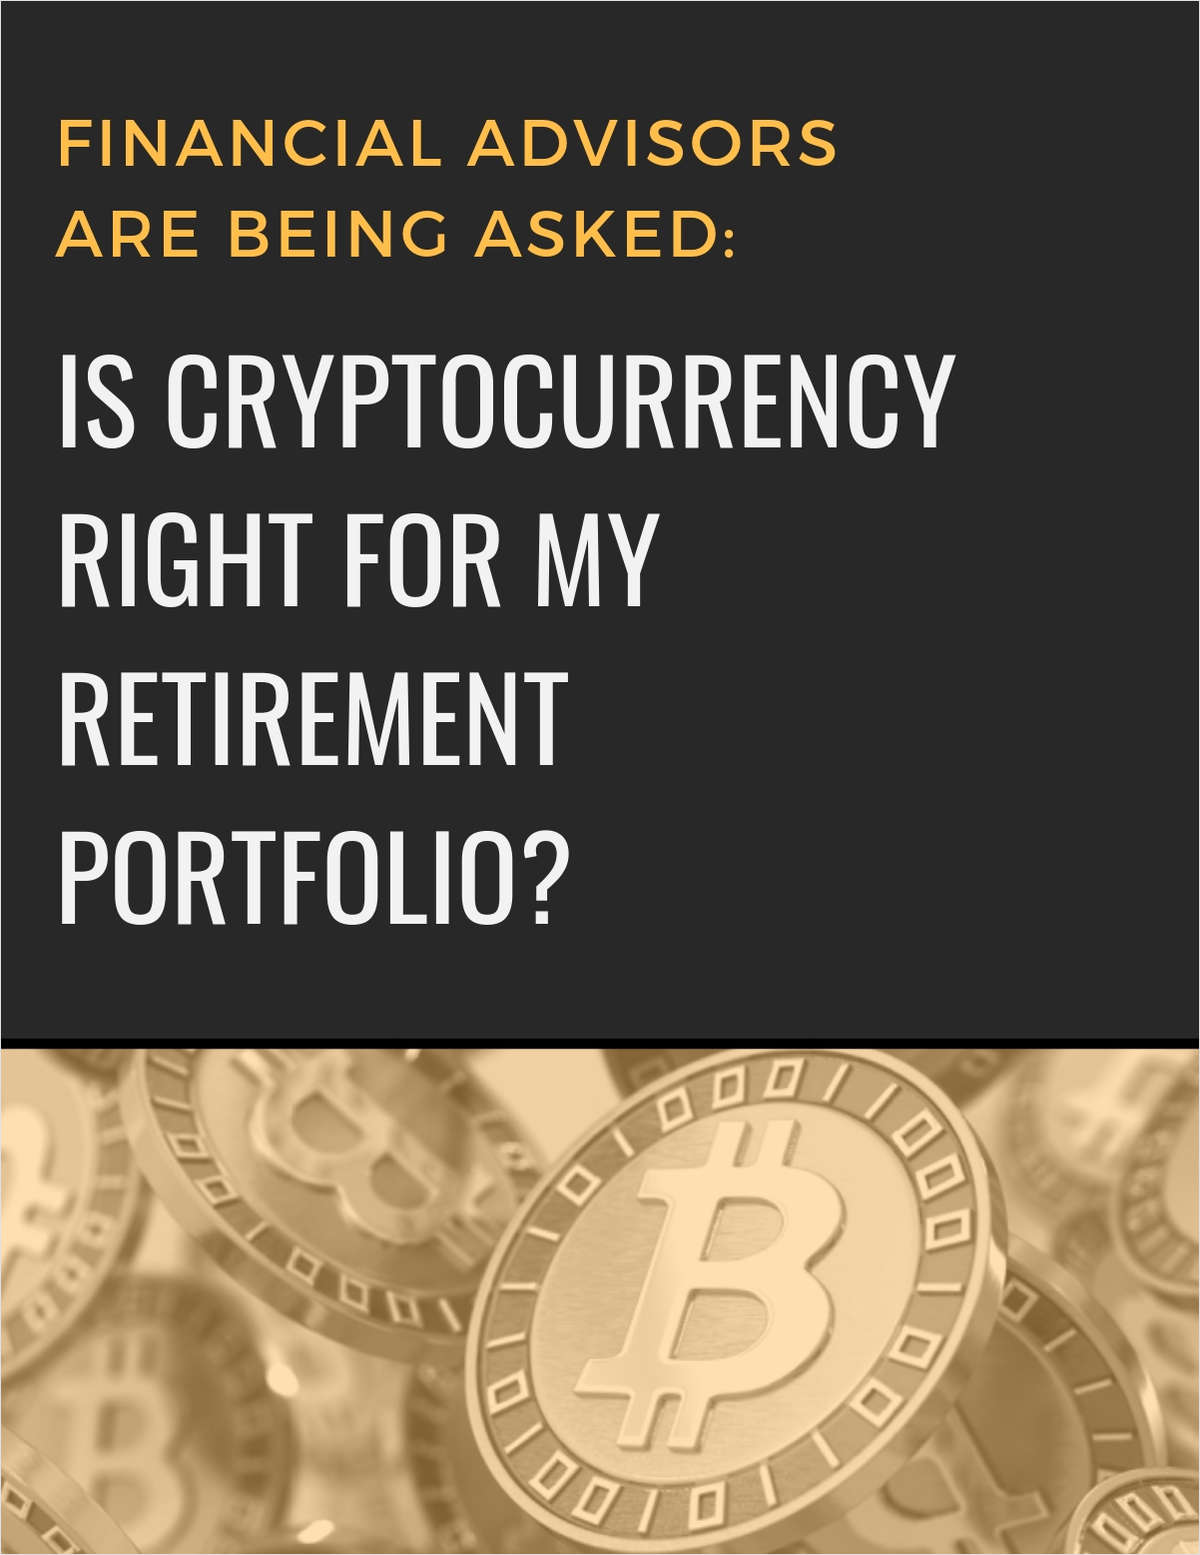 Financial Advisors are Being Asked: Is Cryptocurrency right for My Retirement Portfolio?